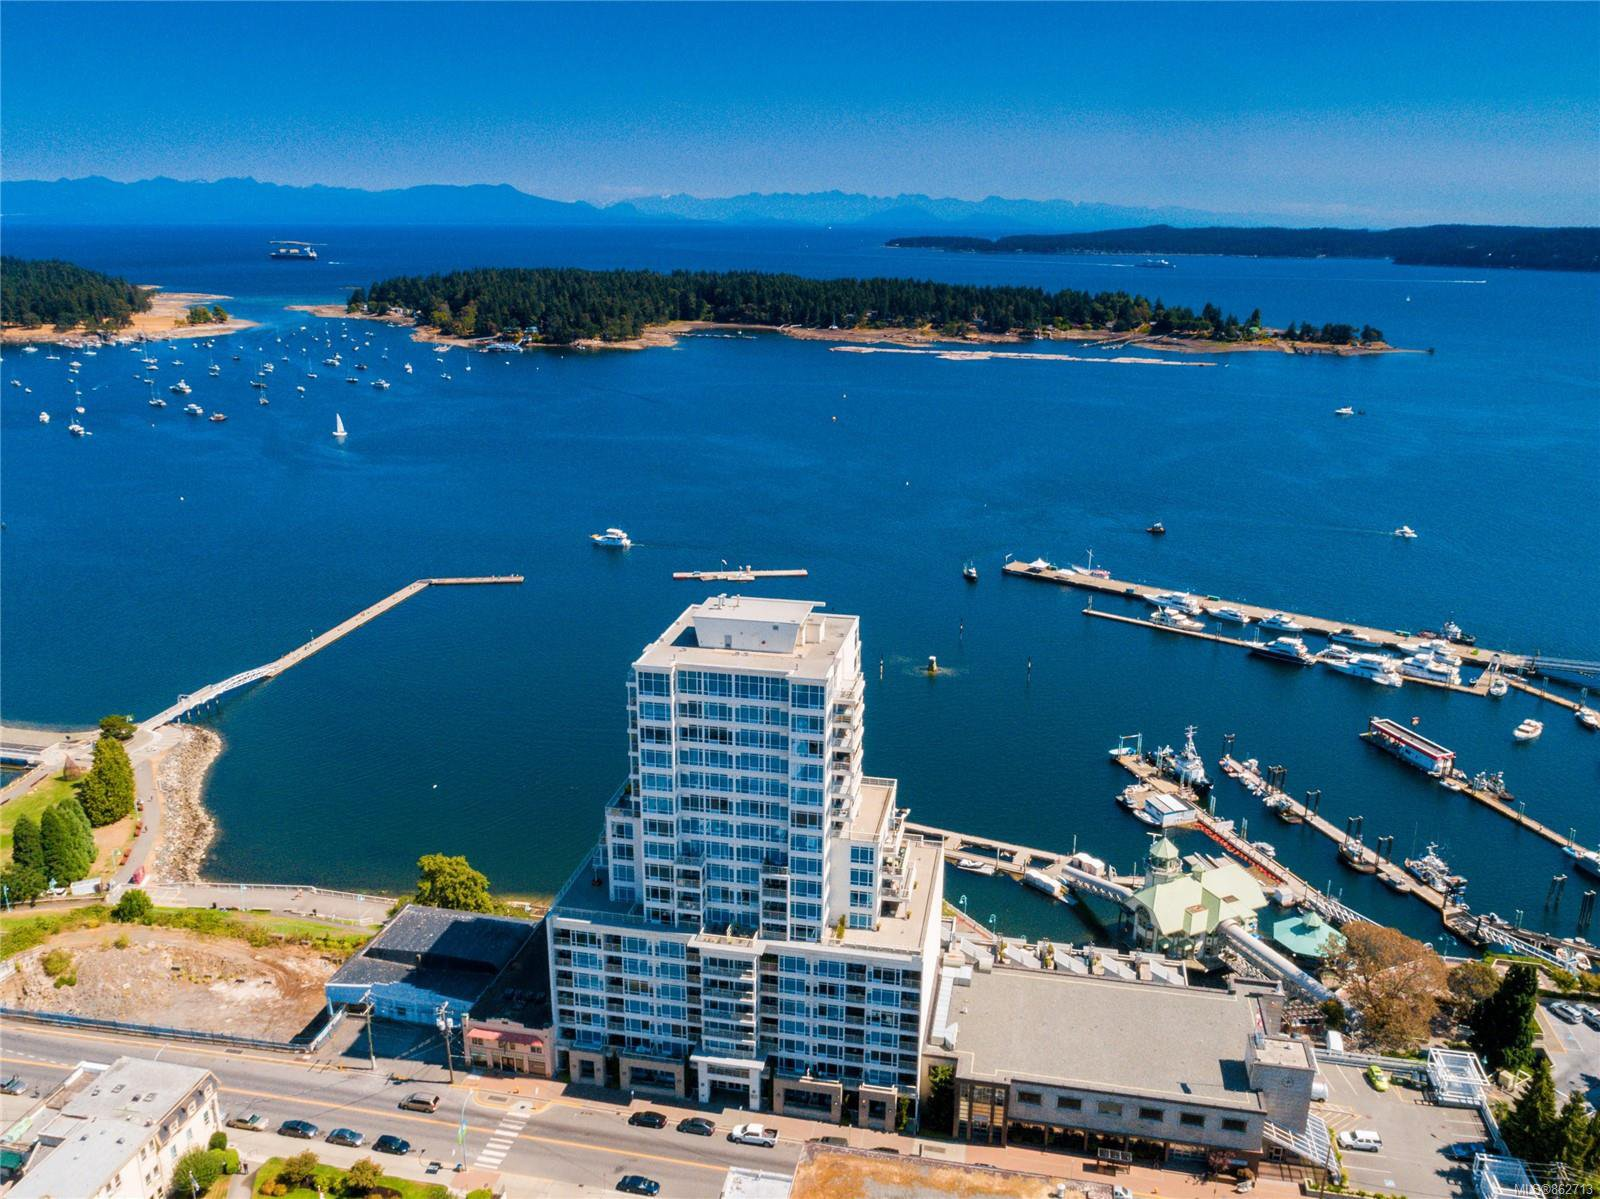 Main Photo: 610 38 Front St in : Na Old City Condo for sale (Nanaimo)  : MLS®# 862713